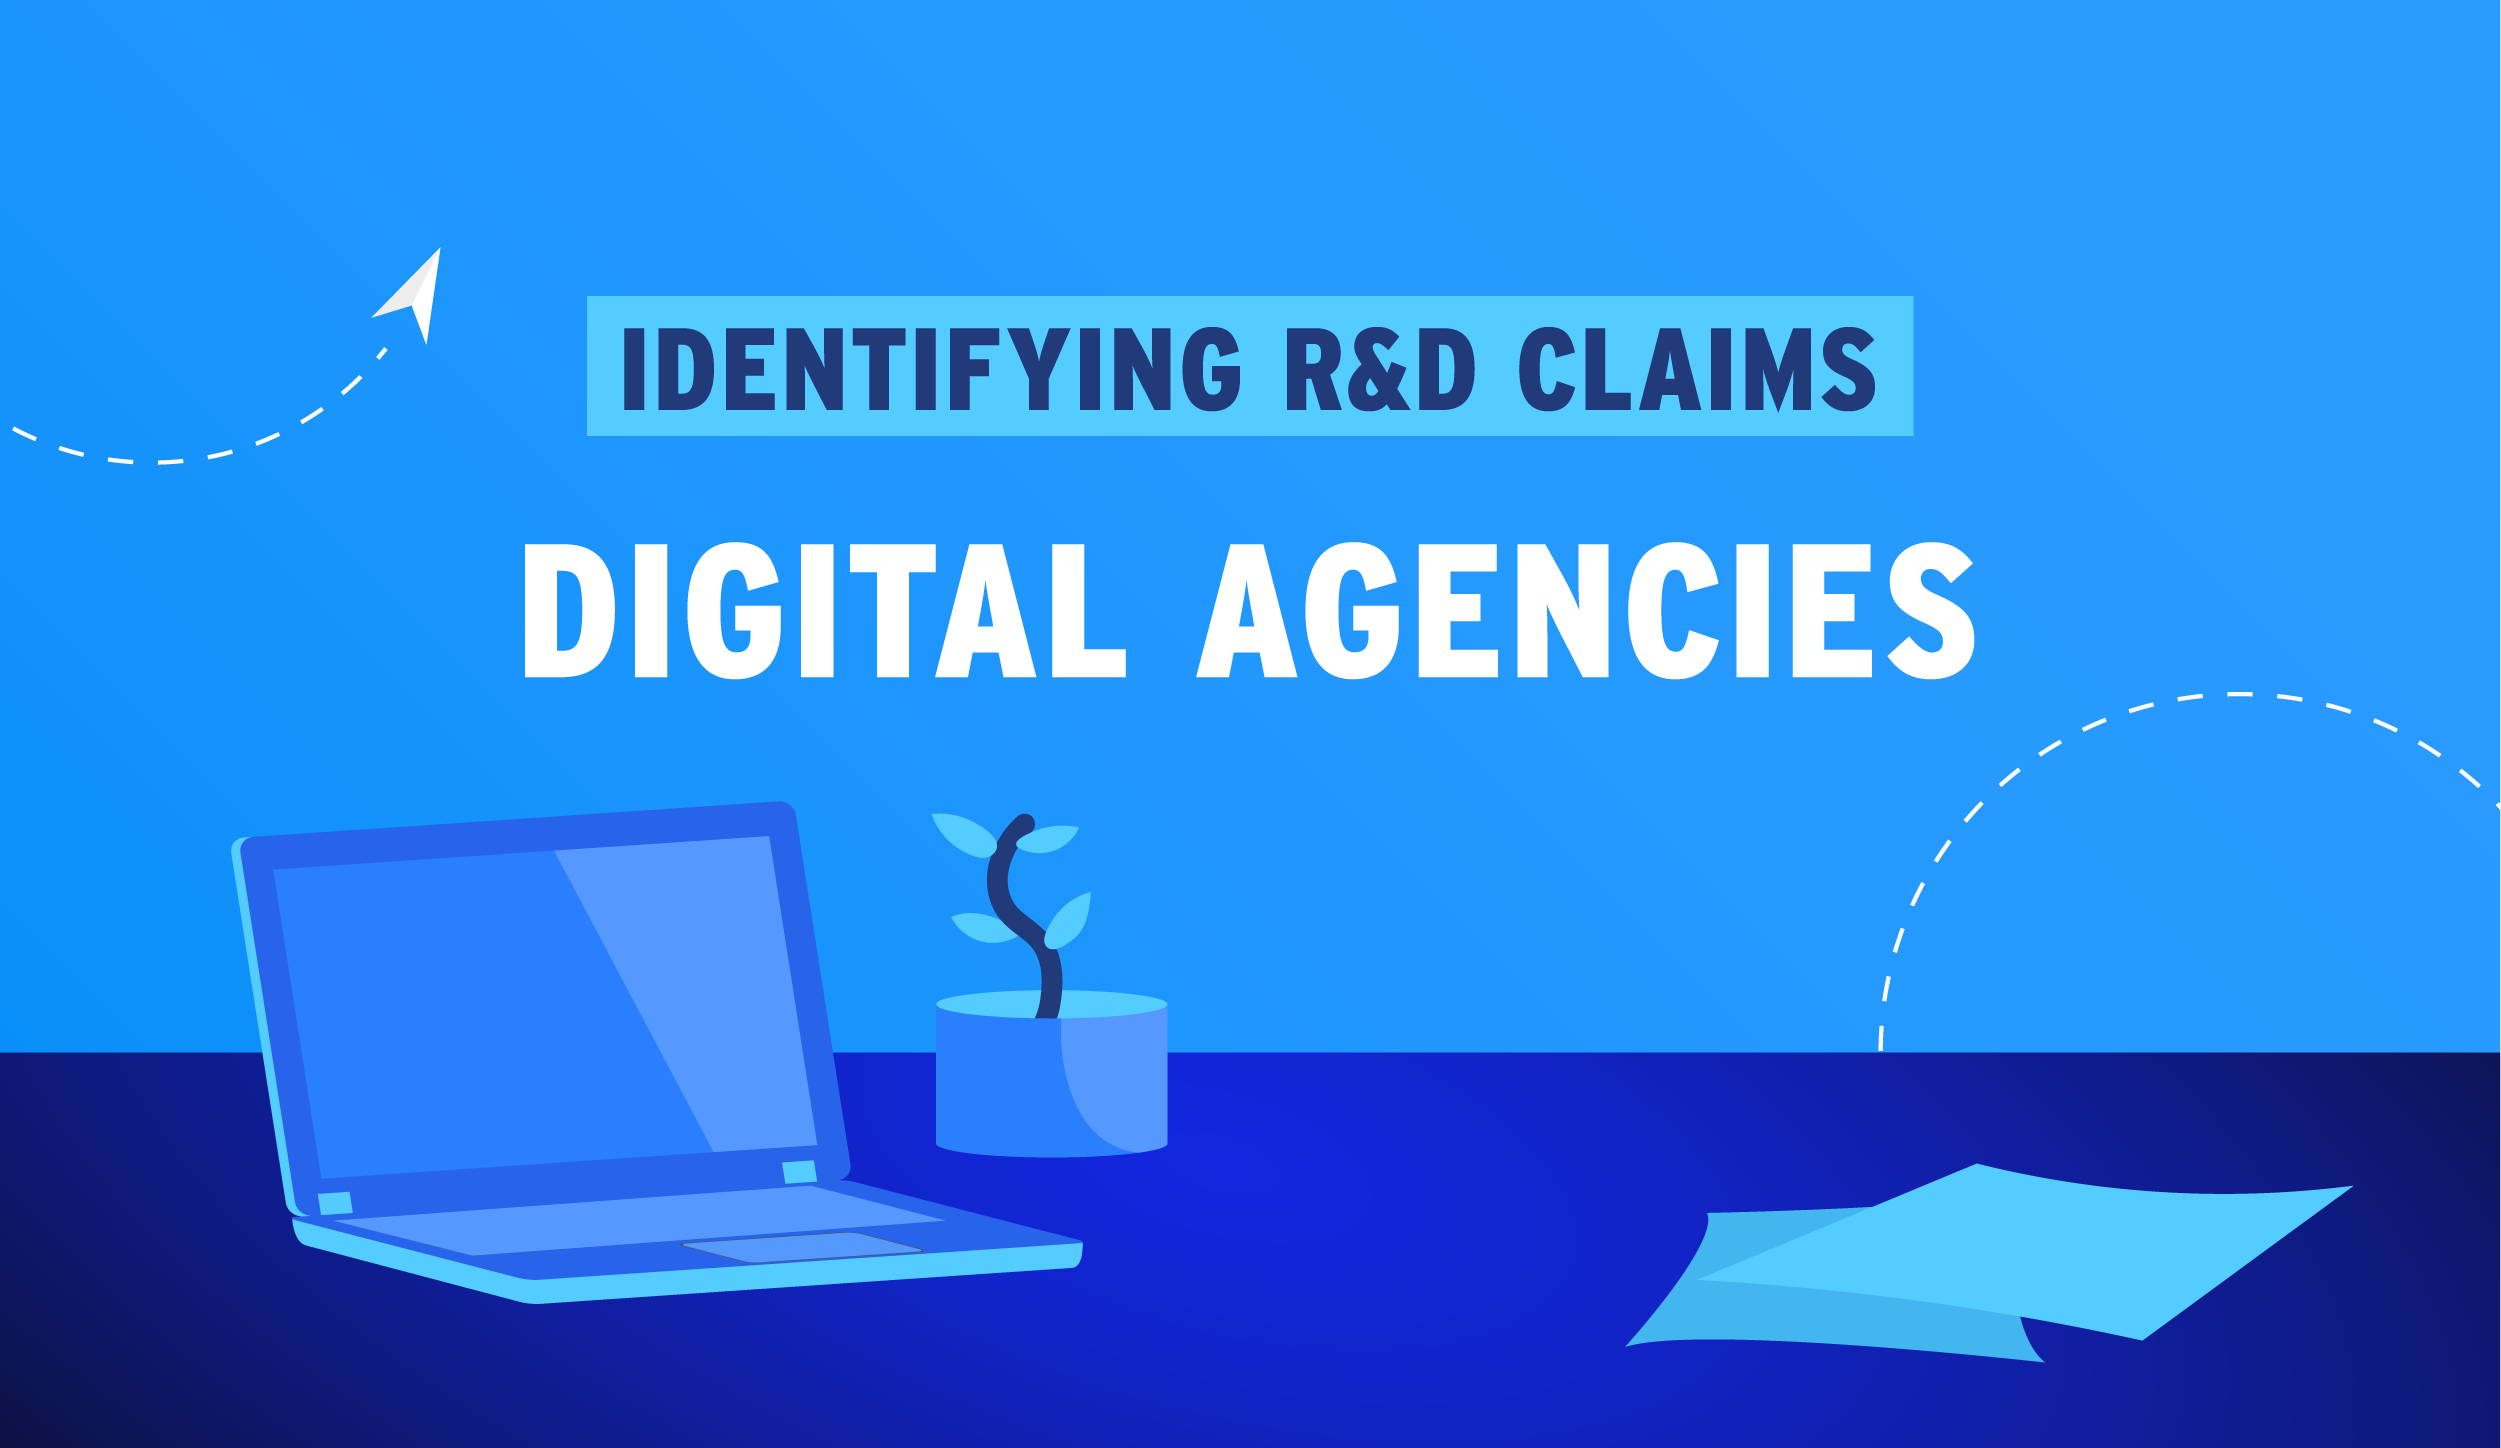 Banner image of whether or not Digital Agencies qualify for R&D